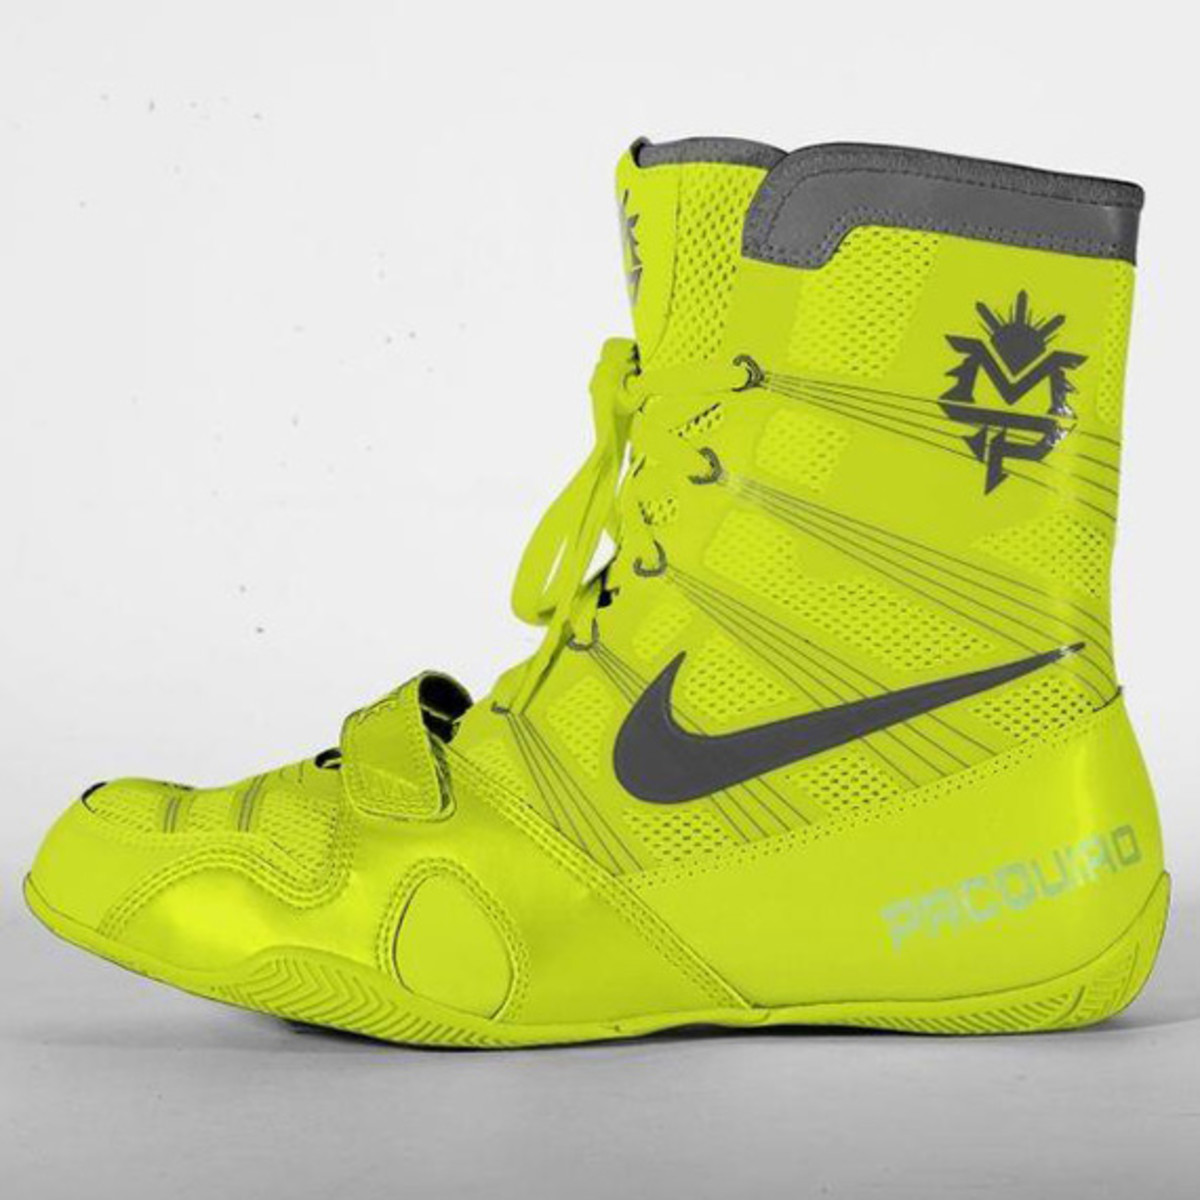 manny-pacquiao-nike-hyperko-mp-boxing-boot-new-colors-01